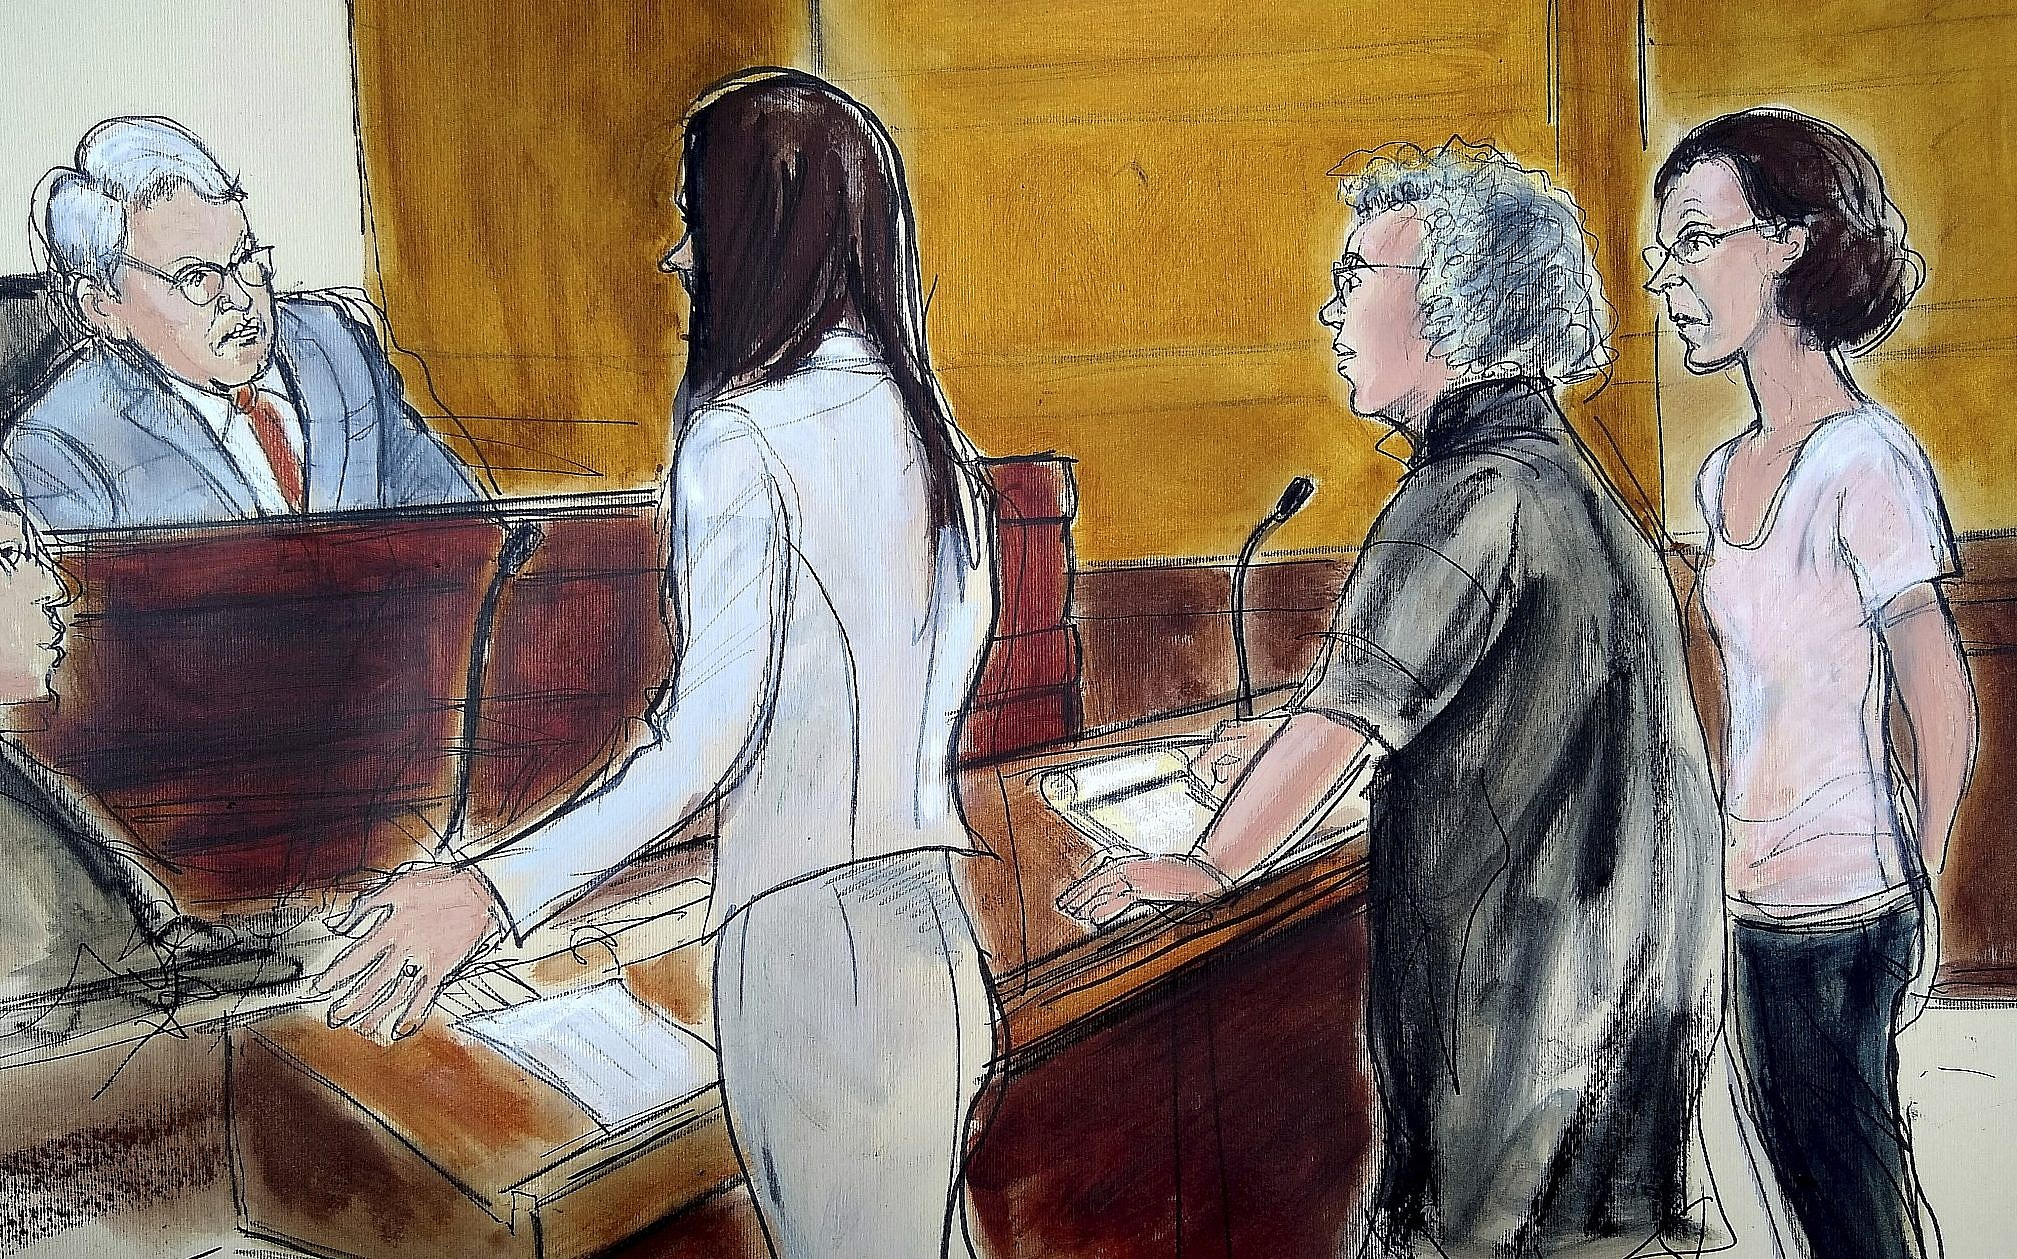 Heiress charged with aiding alleged cult, free on $100M bond